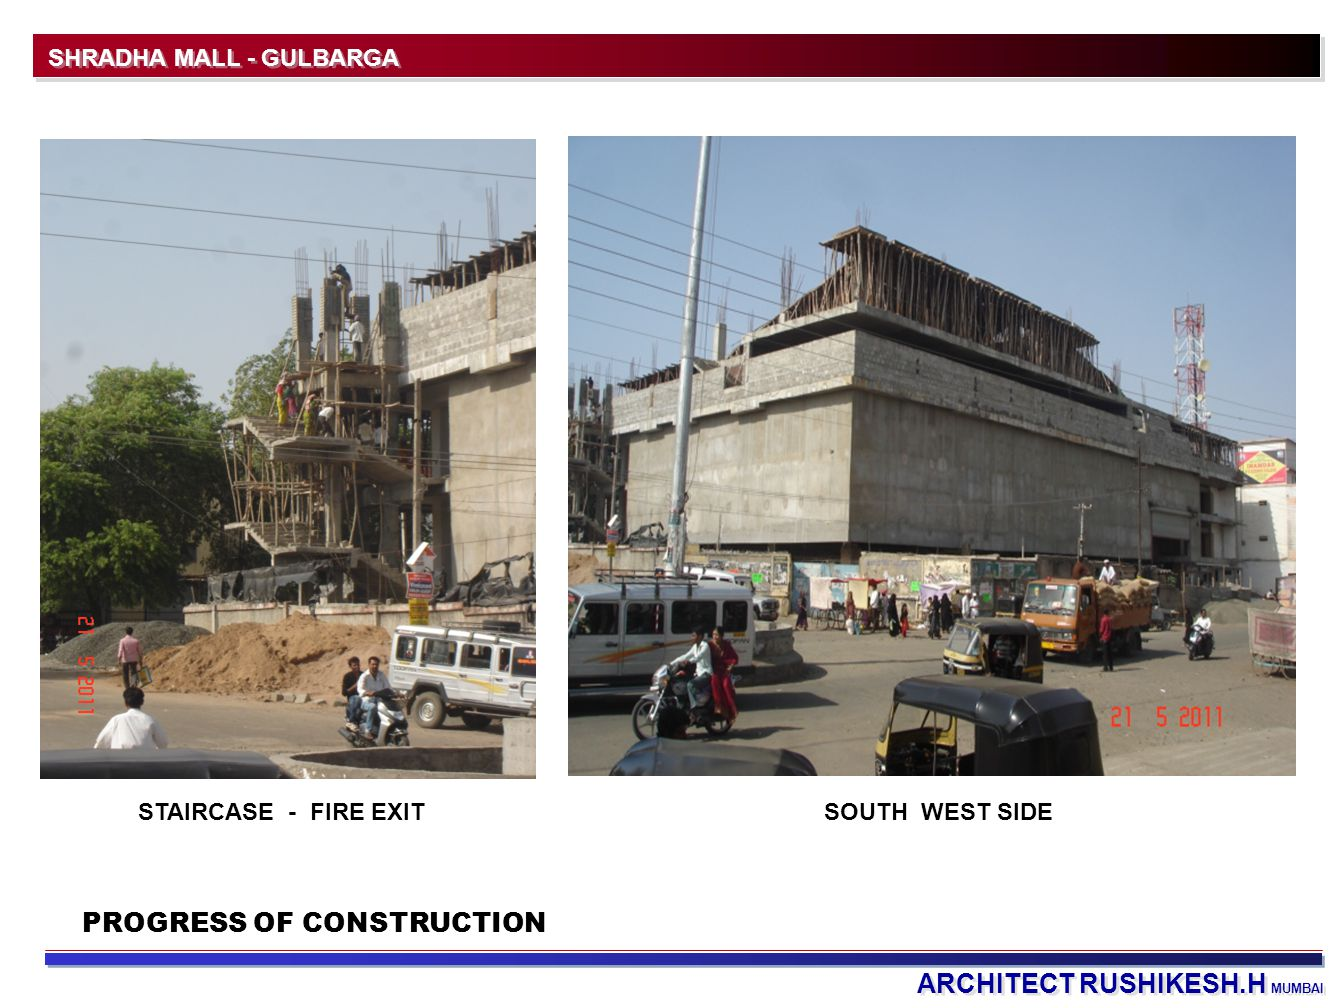 ARCHITECT RUSHIKESH.H MUMBAI SHRADHA MALL - GULBARGA PROGRESS OF CONSTRUCTION STAIRCASE - FIRE EXITSOUTH WEST SIDE